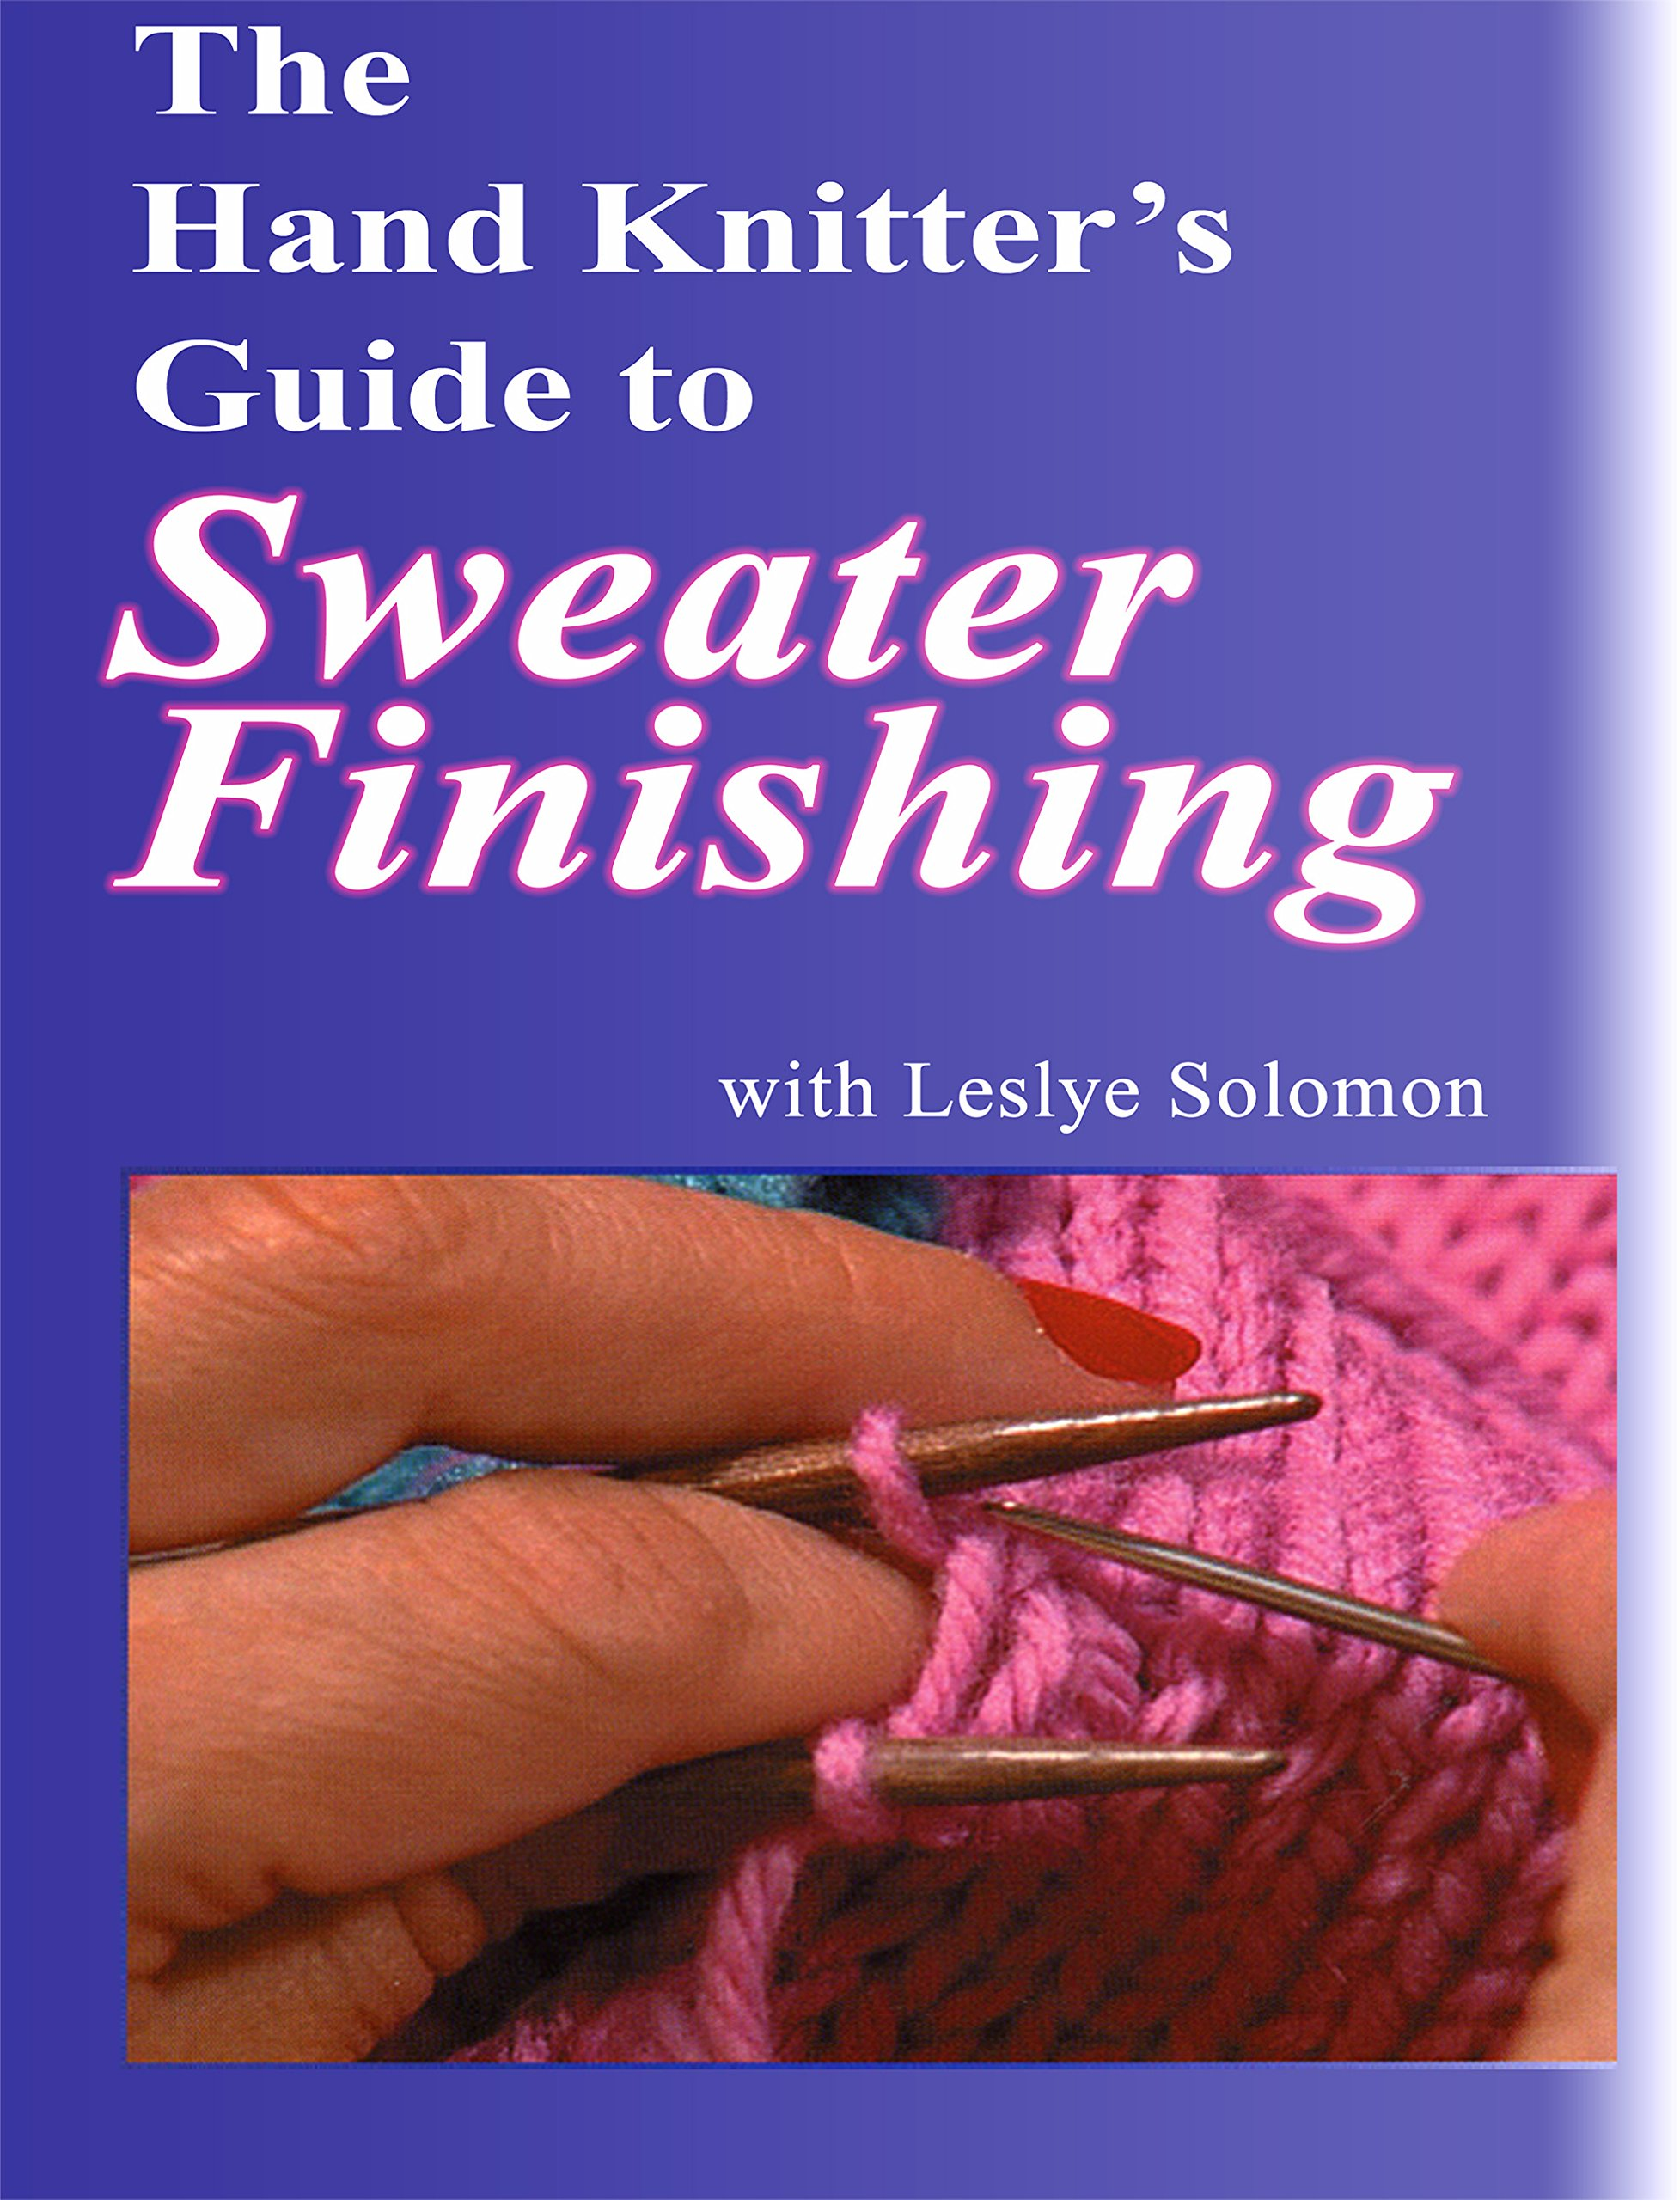 Sweater Finishing DVD, The Hand Knitters Guide with Leslye Solomon by Woolstock Up Next Productions (Image #1)